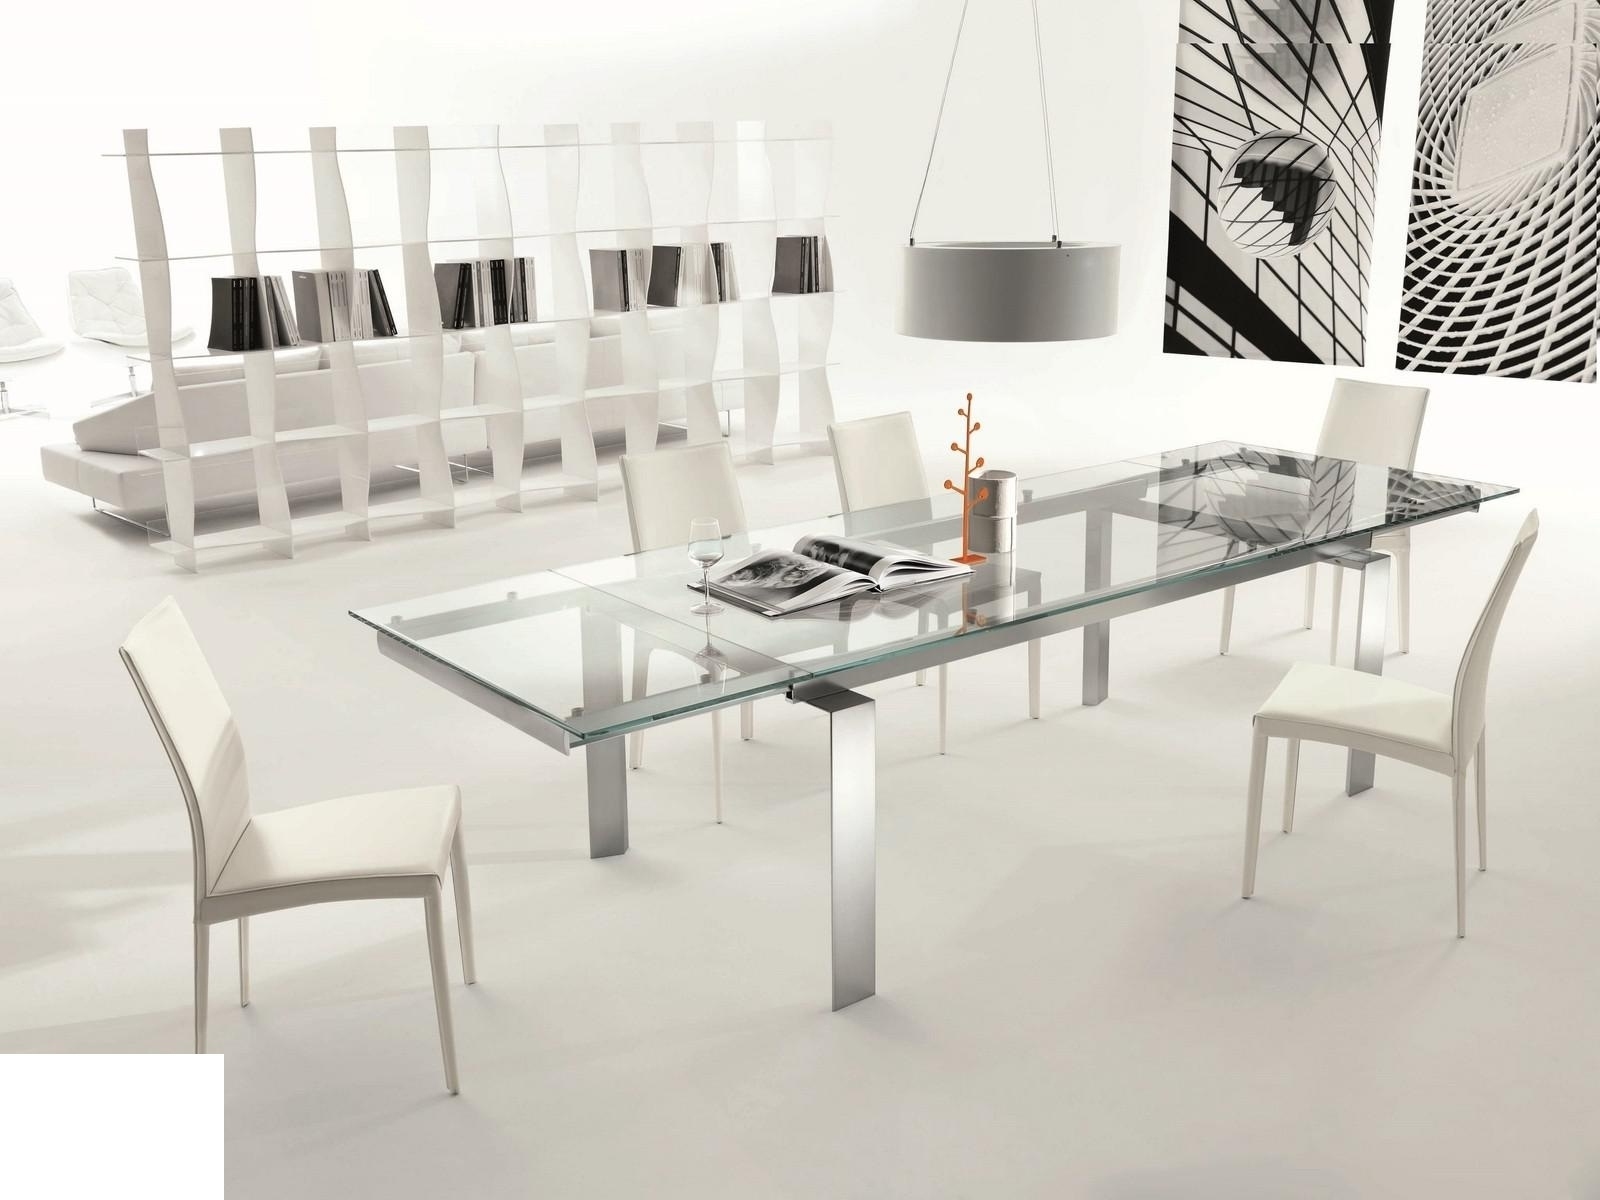 Extendable Glass Dining Tables And 6 Chairs For Well Known Chair: Extendable Glass Dining Table And 6 Chairs (View 8 of 25)